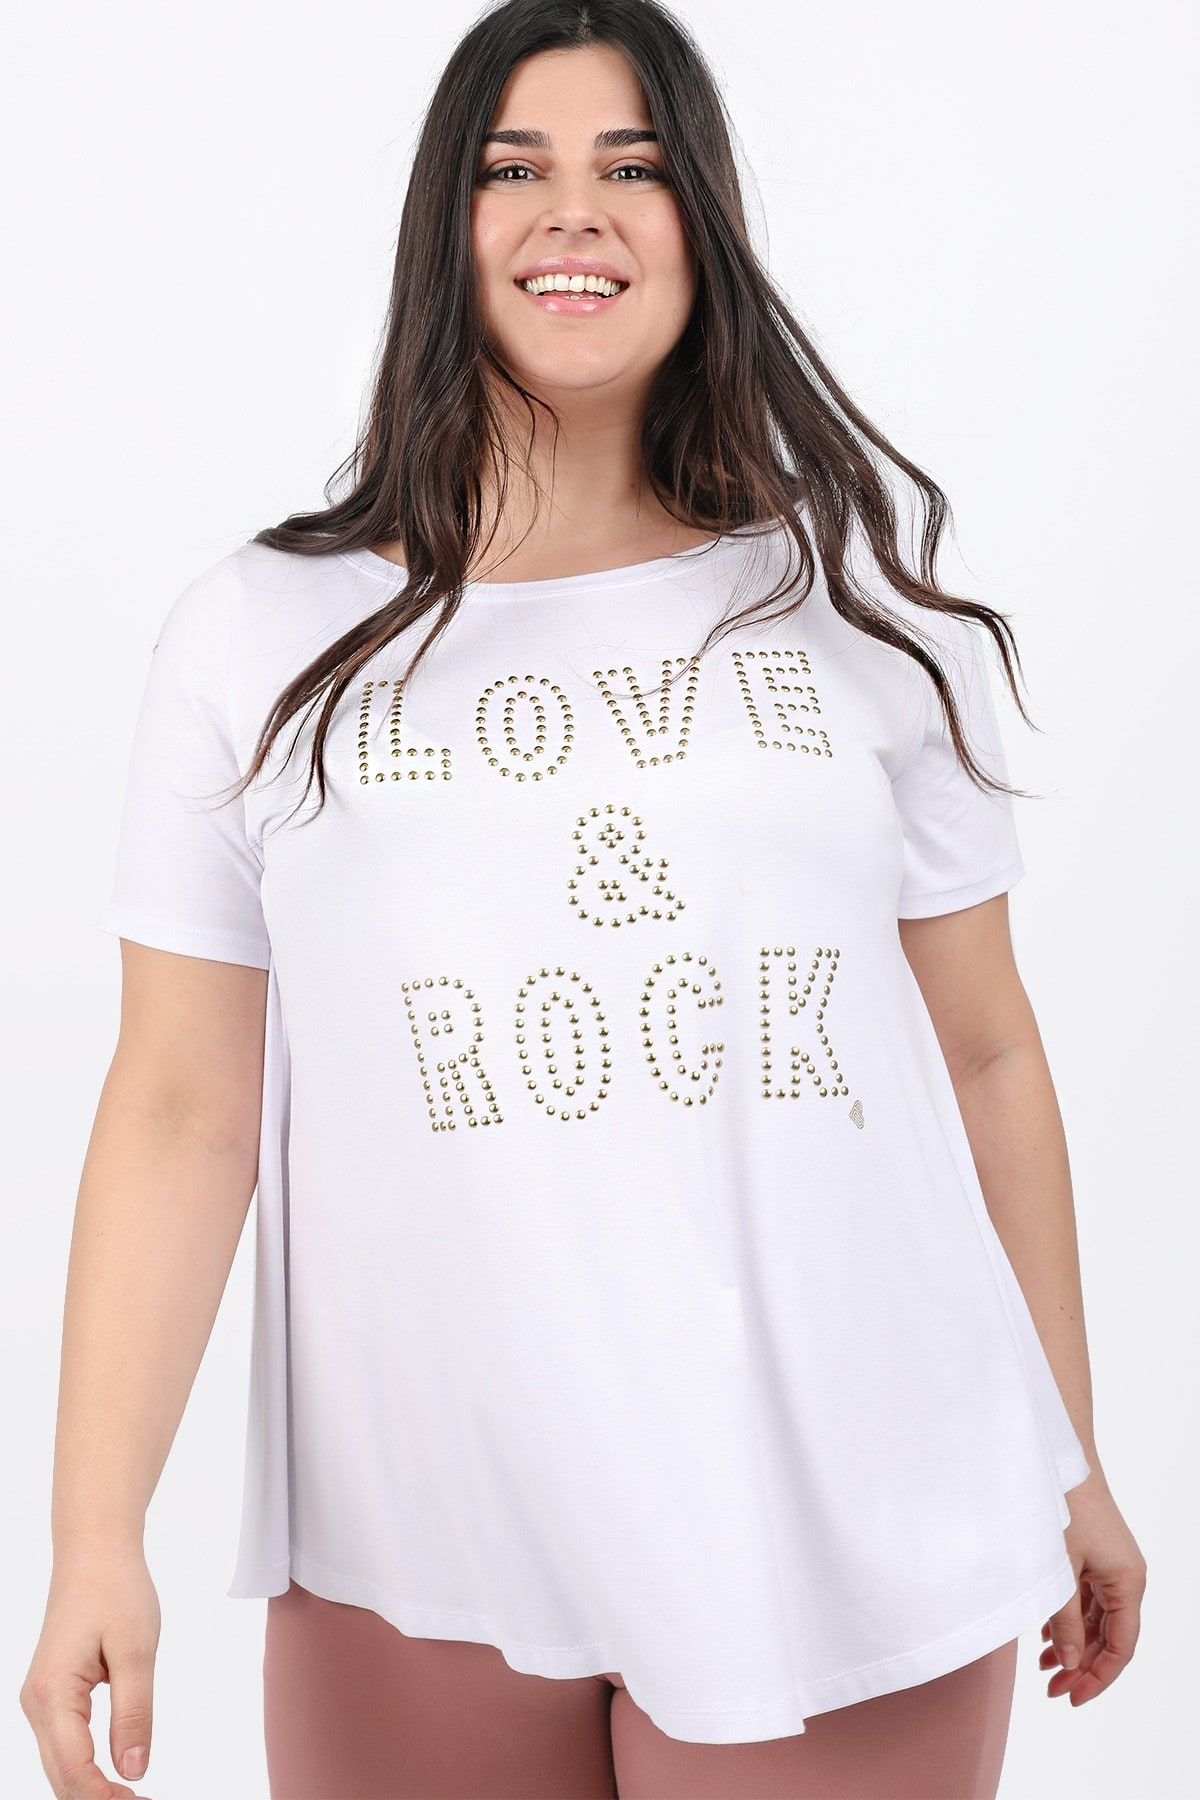 T-shirt LOVE AND ROCK